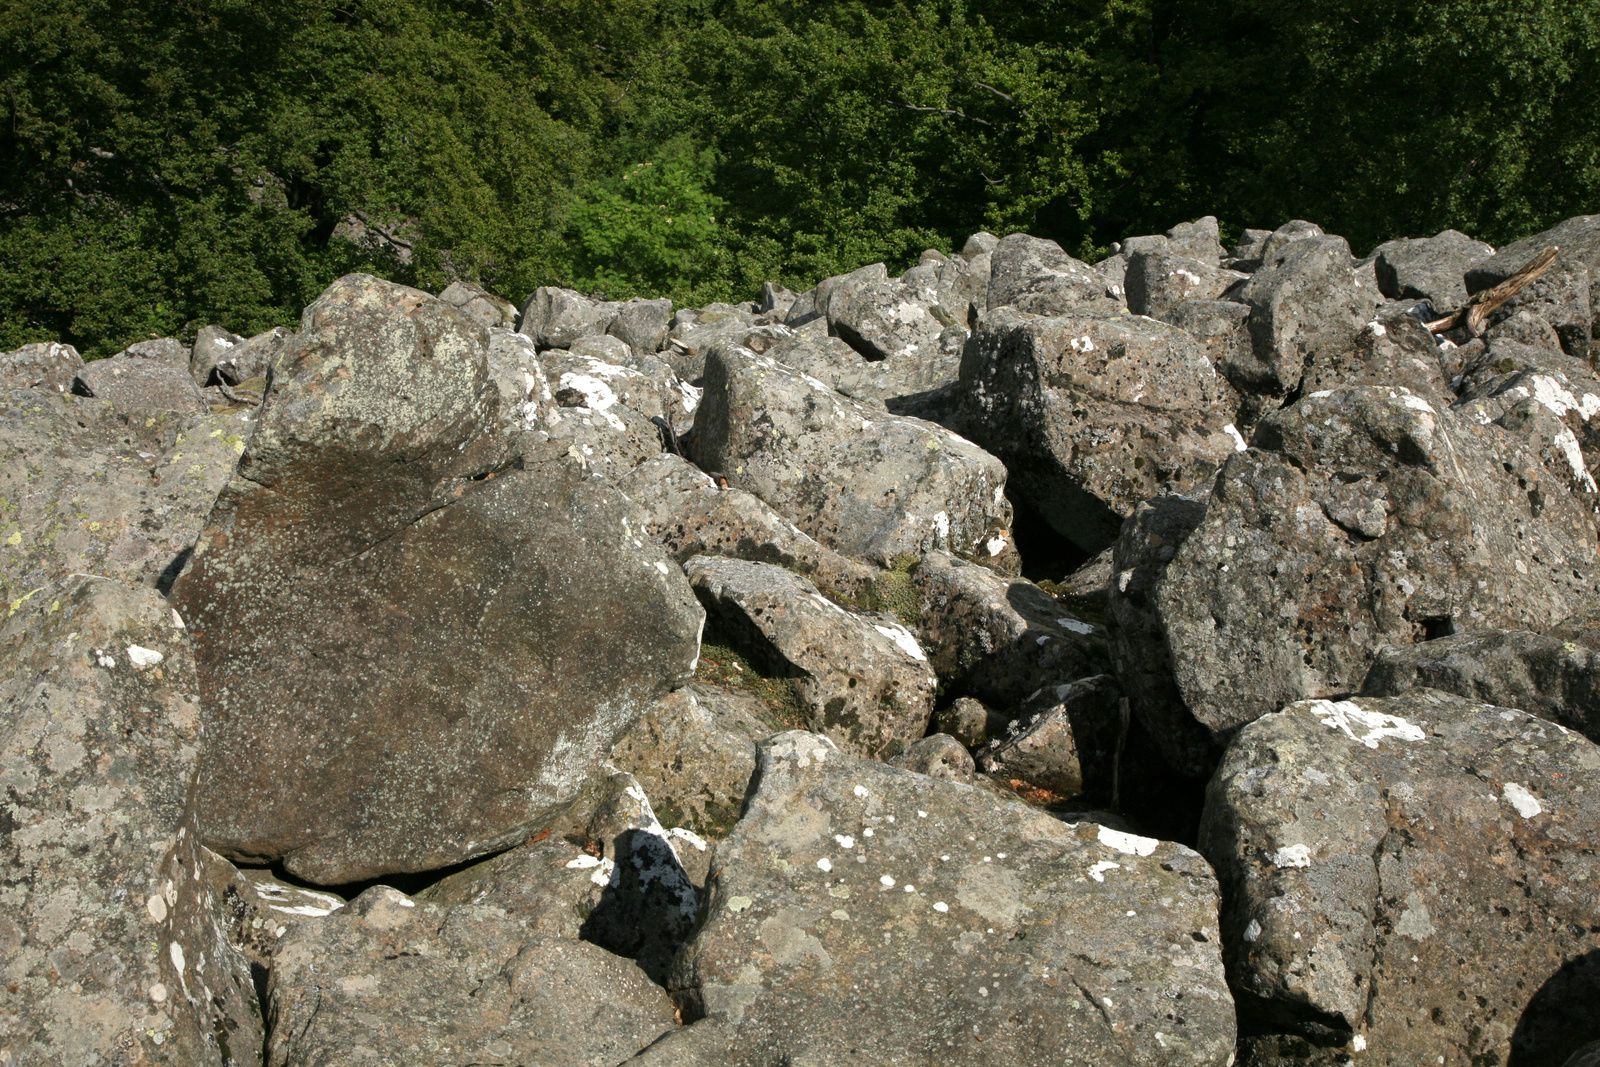 Schafstein - High of the scree - pieces of eroded basalt columns - photo © Bernard Duyck 05.2014